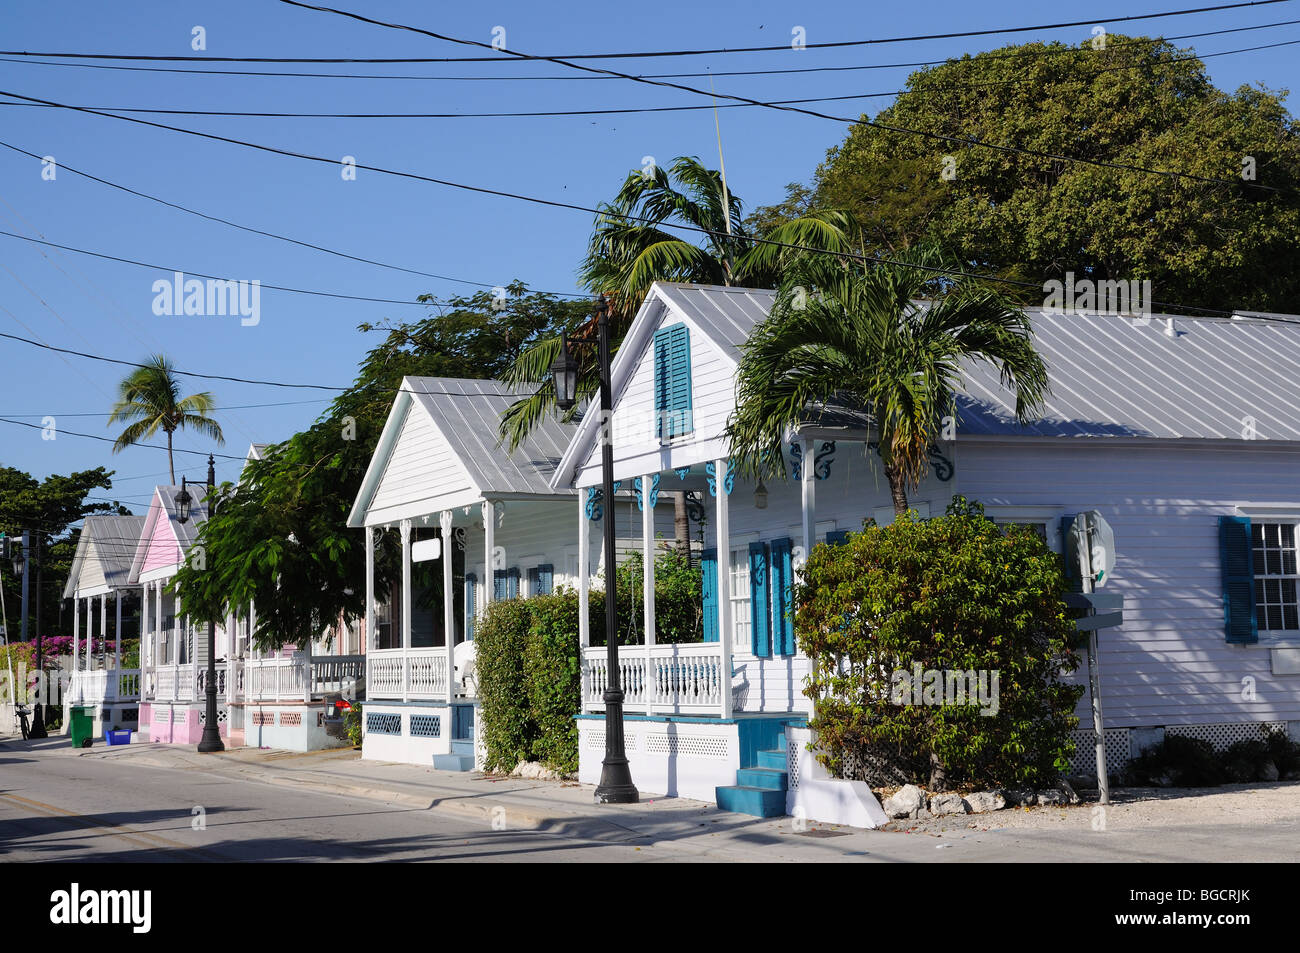 Traditional Wooden Houses at Key West, Florida USA - Stock Image